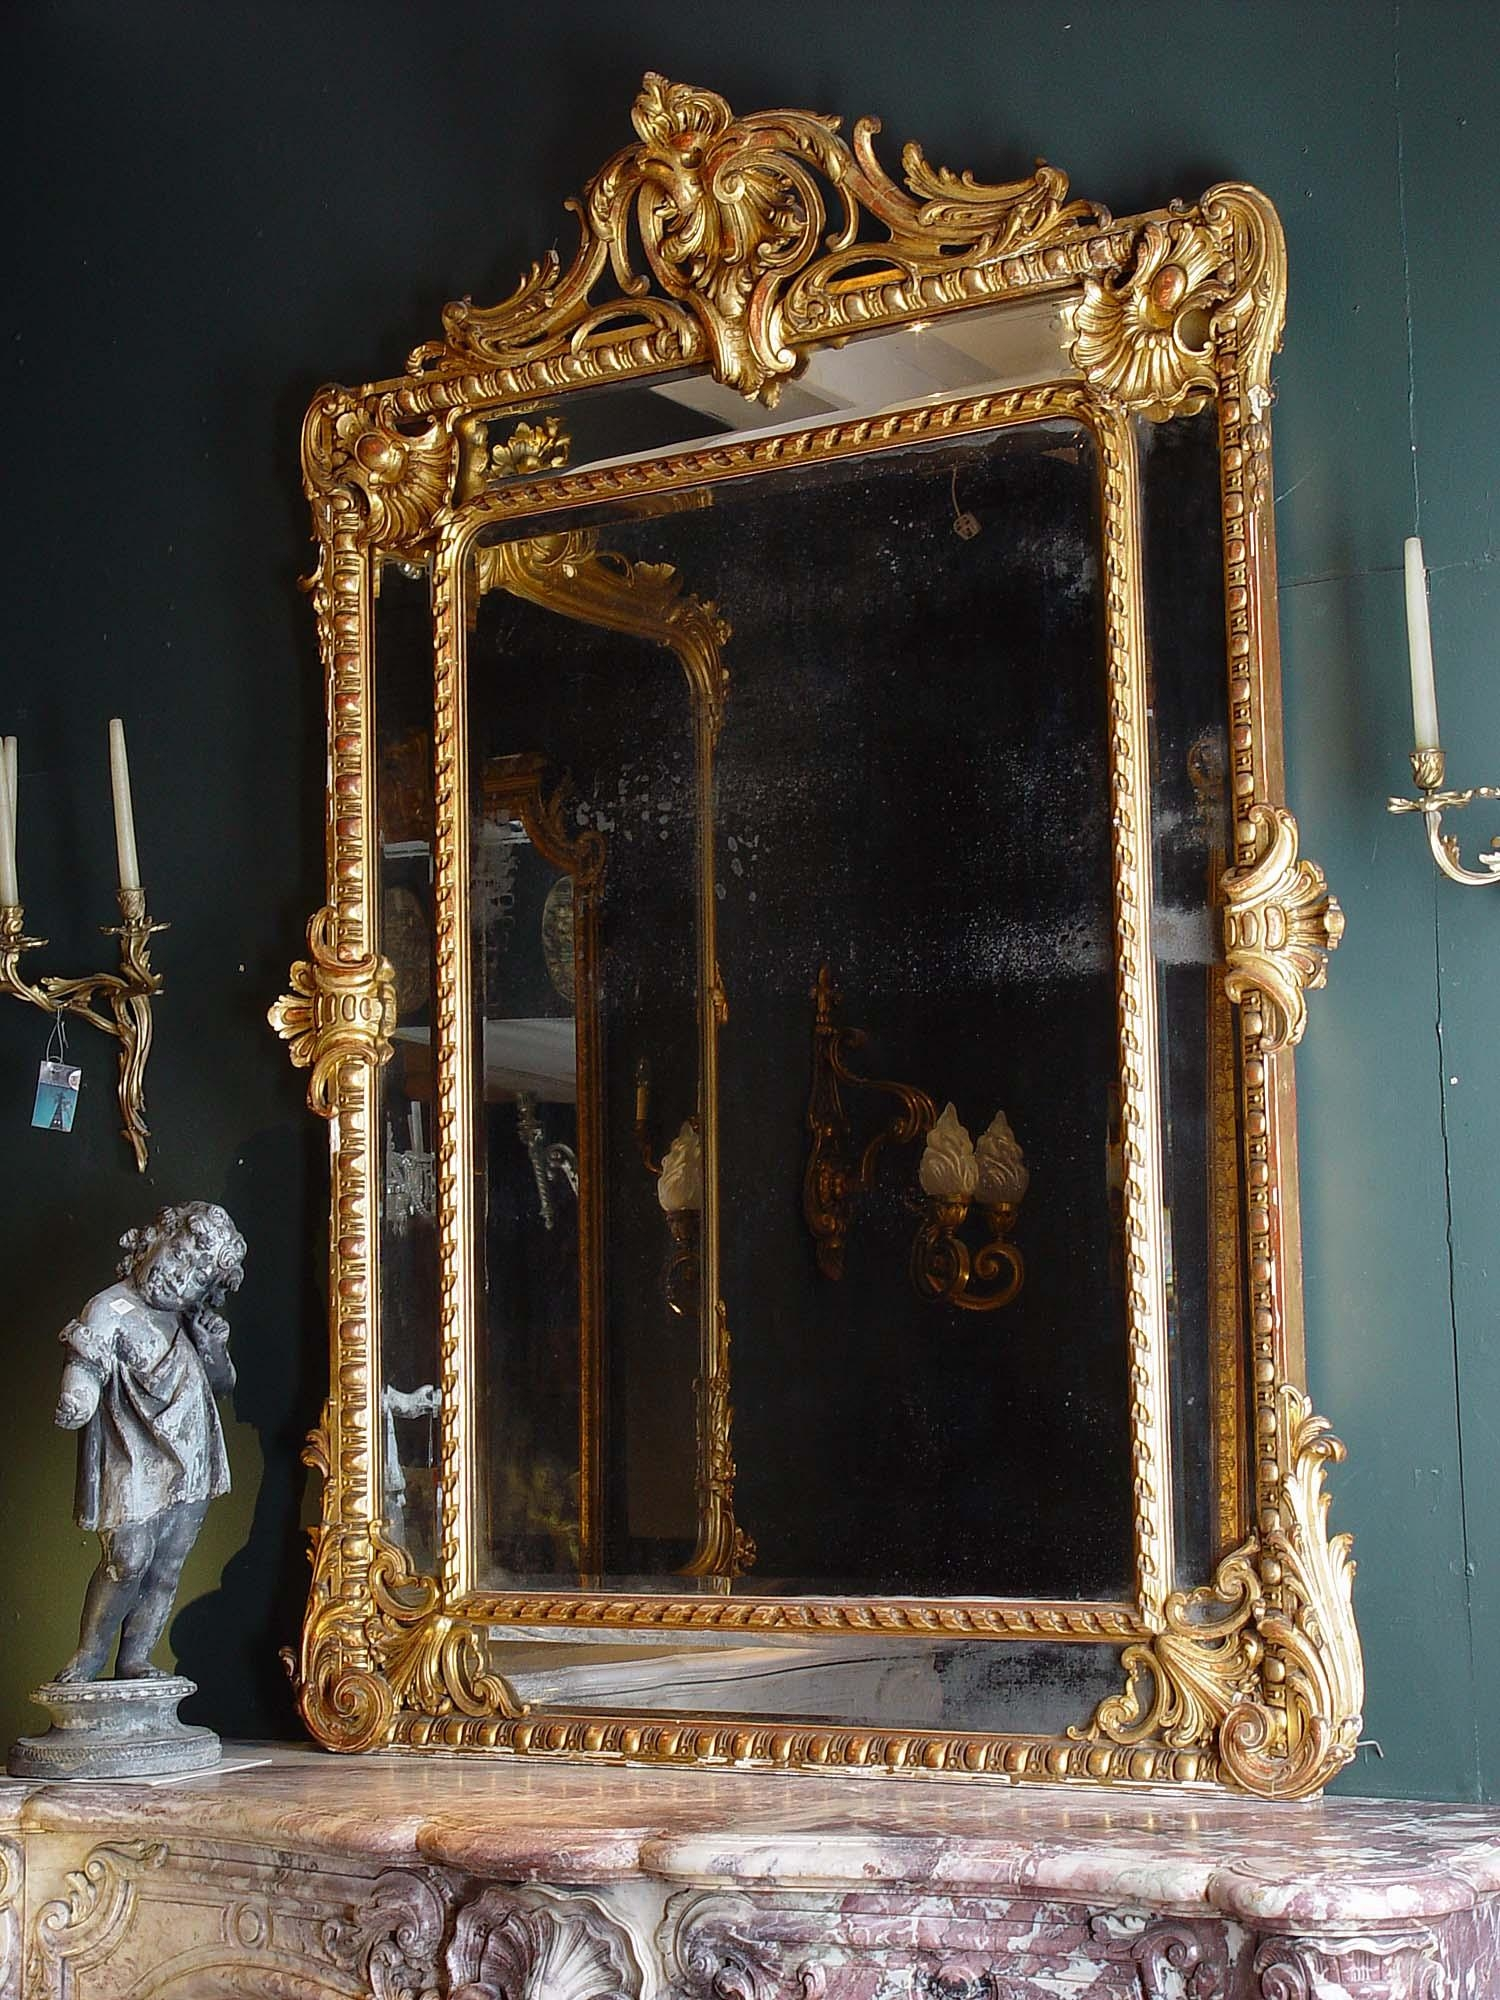 Big Mirrors For Sale 103 Trendy Interior Or Large Gold Very Ornate Within Antique Mirrors For Sale (View 6 of 16)